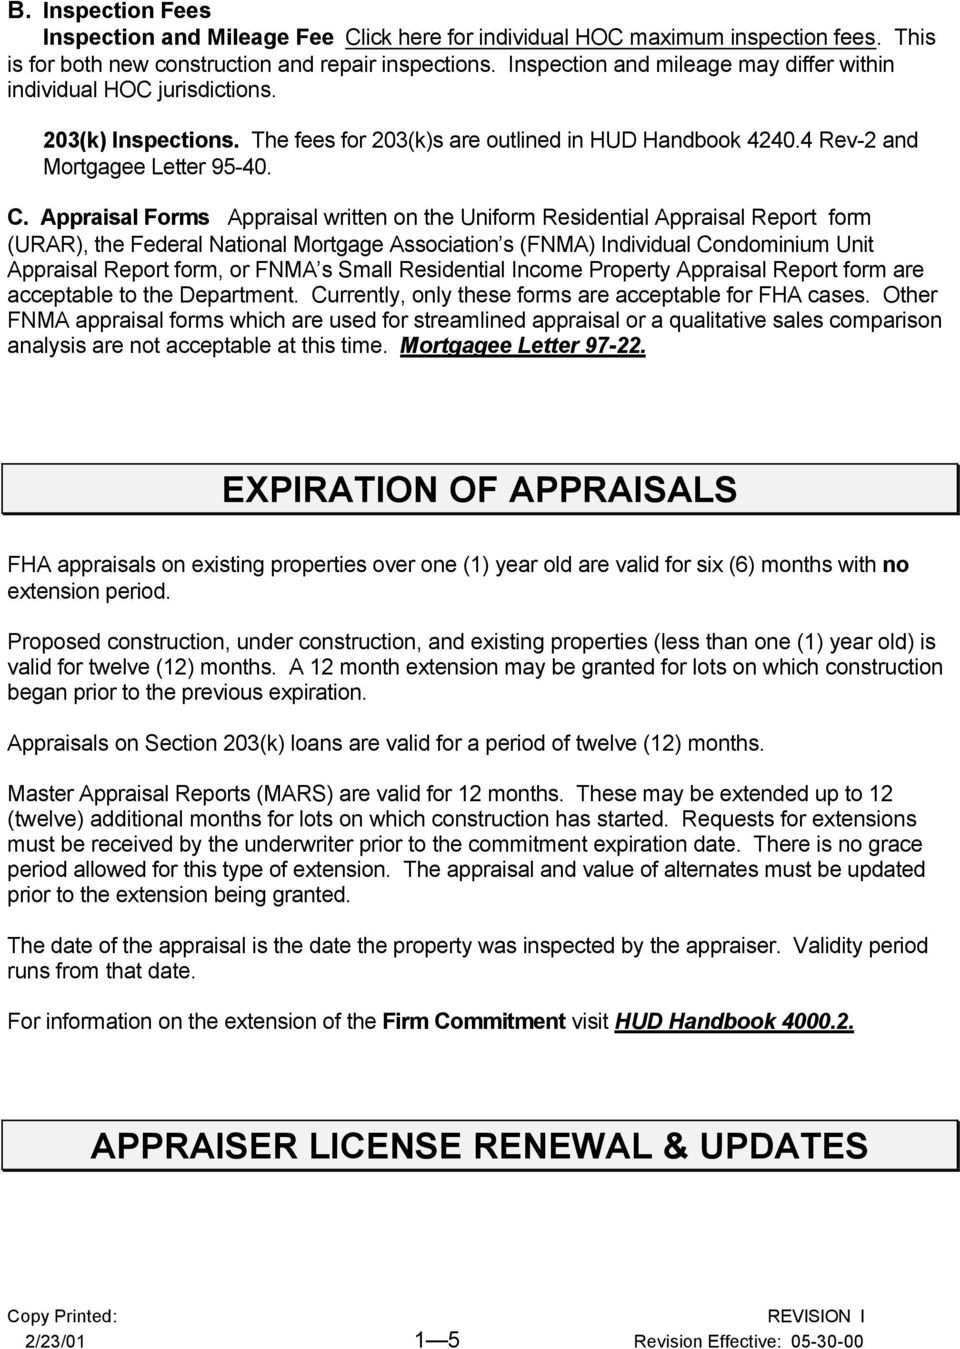 Appraisal Forms Appraisal written on the Uniform Residential Appraisal Report form (URAR), the Federal National Mortgage Association s (FNMA) Individual Condominium Unit Appraisal Report form, or